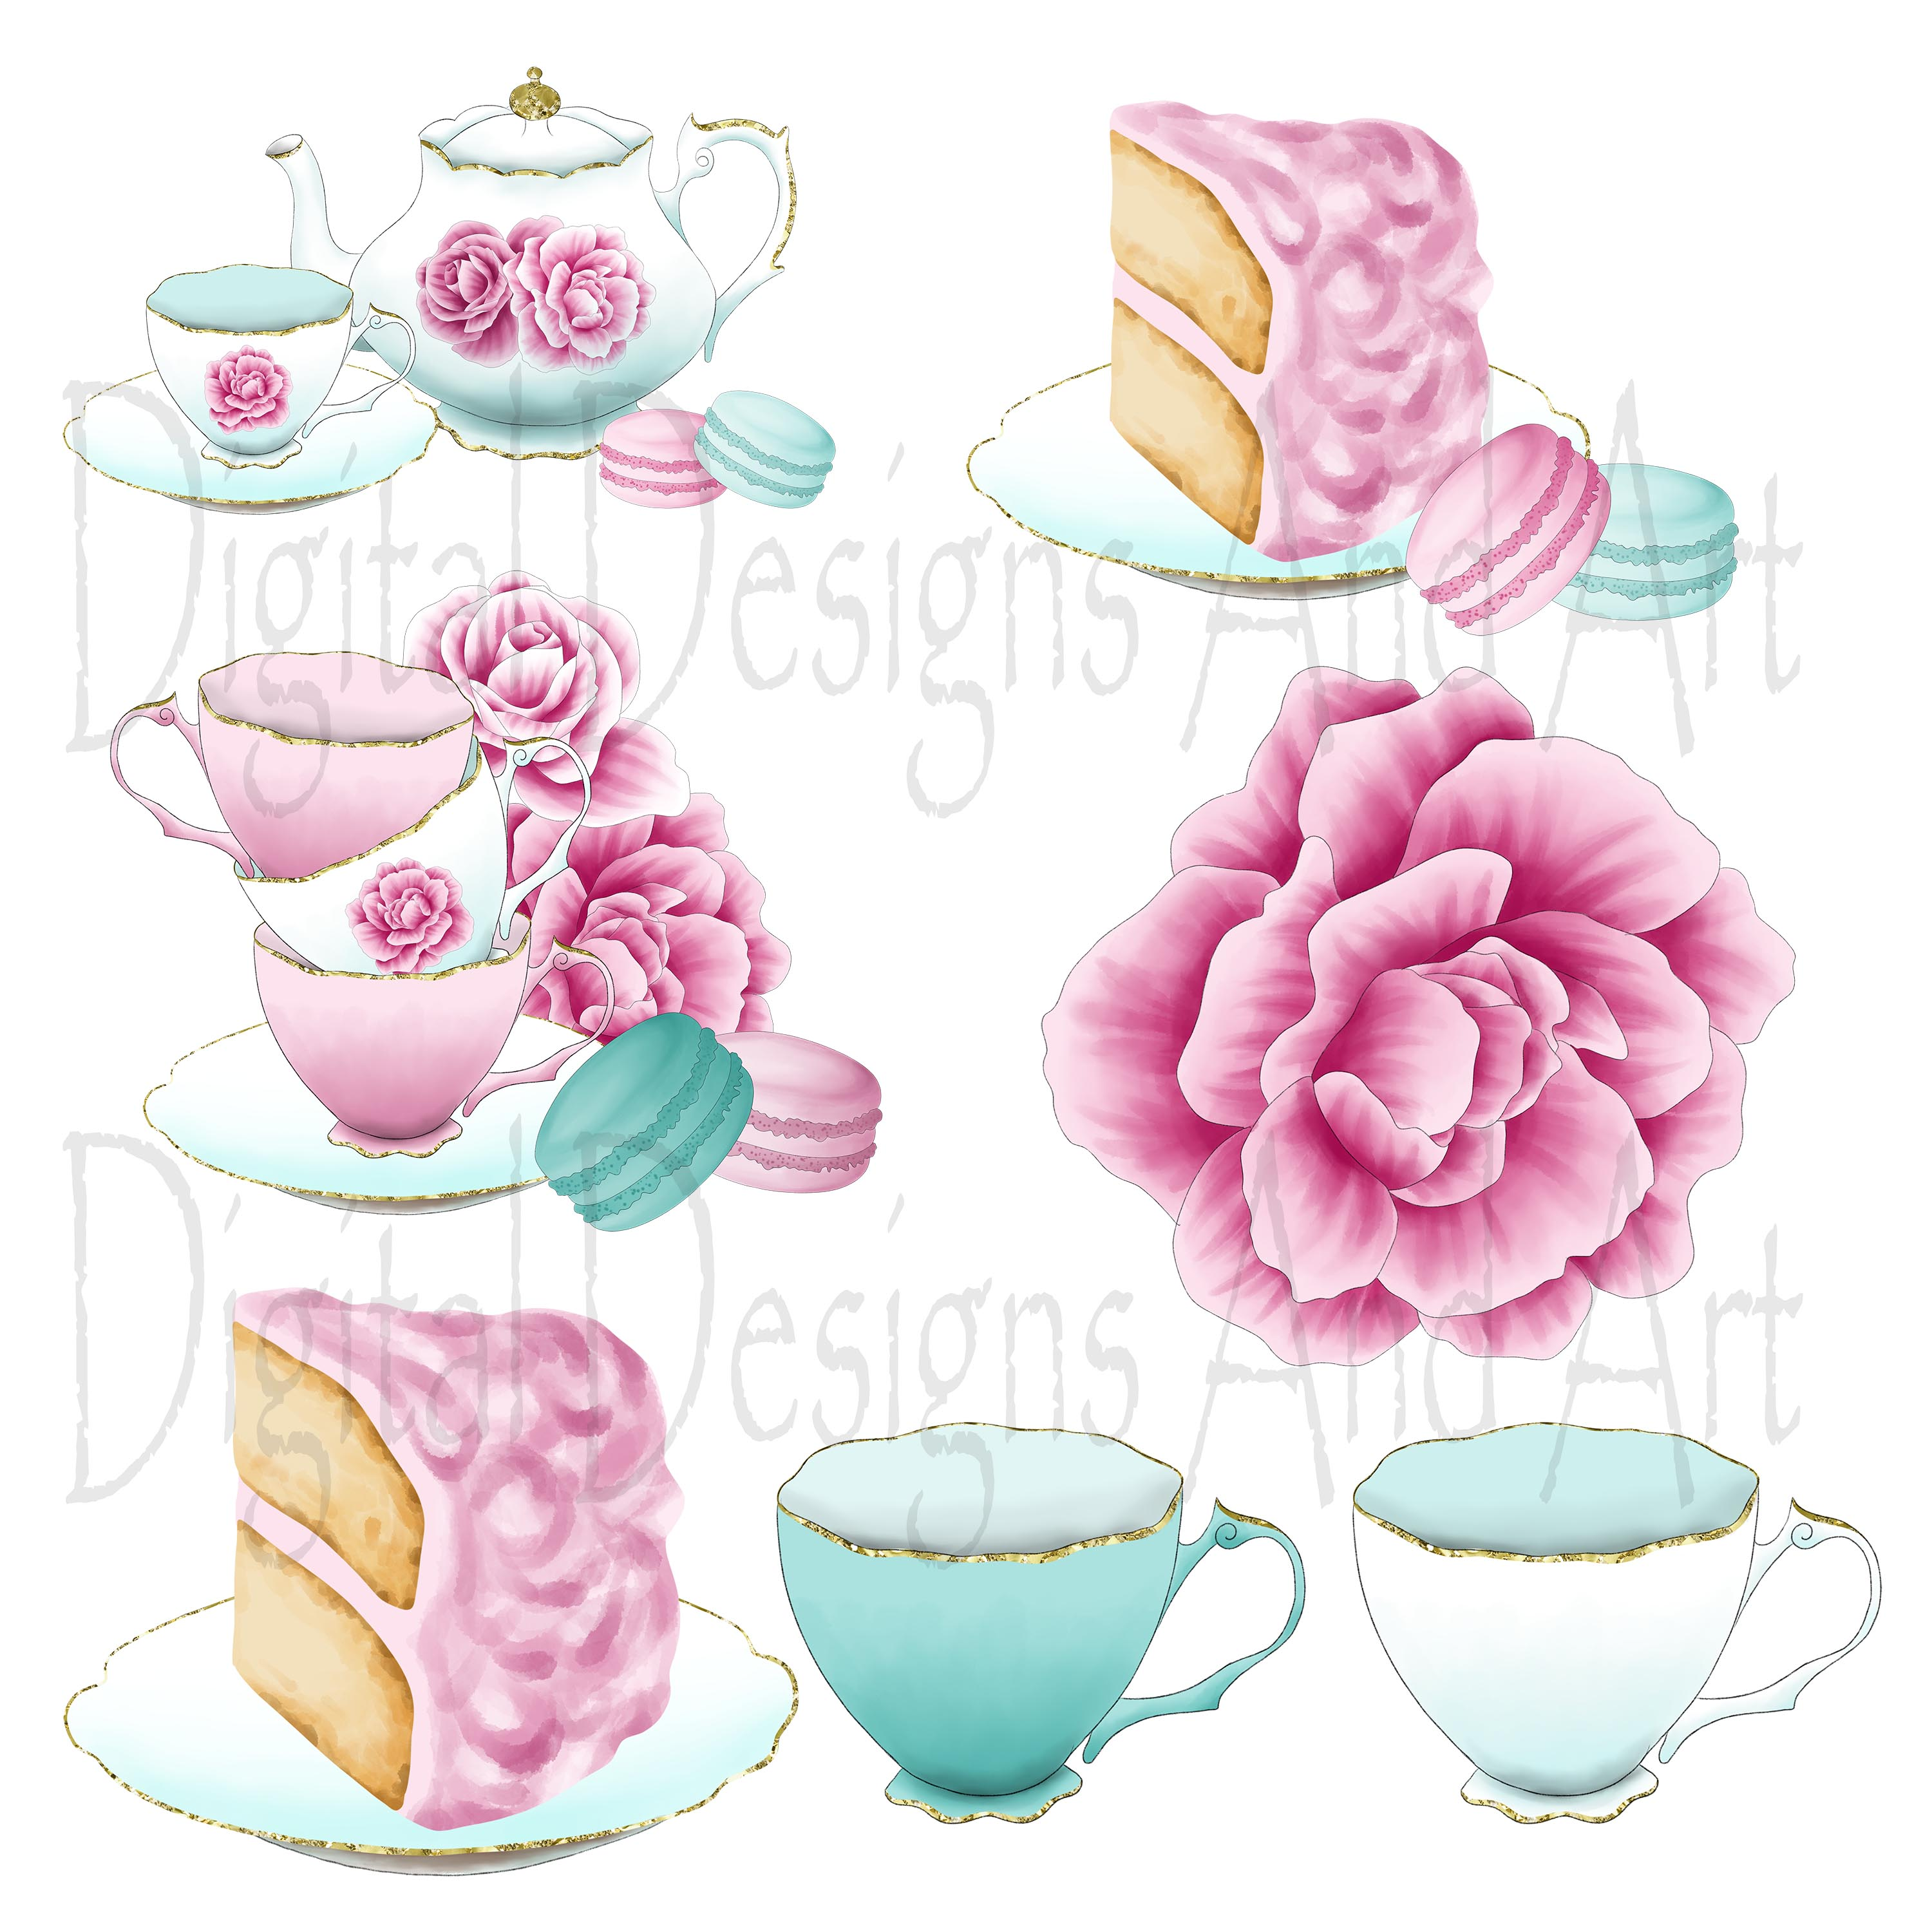 Afternoon tea clipart example image 5